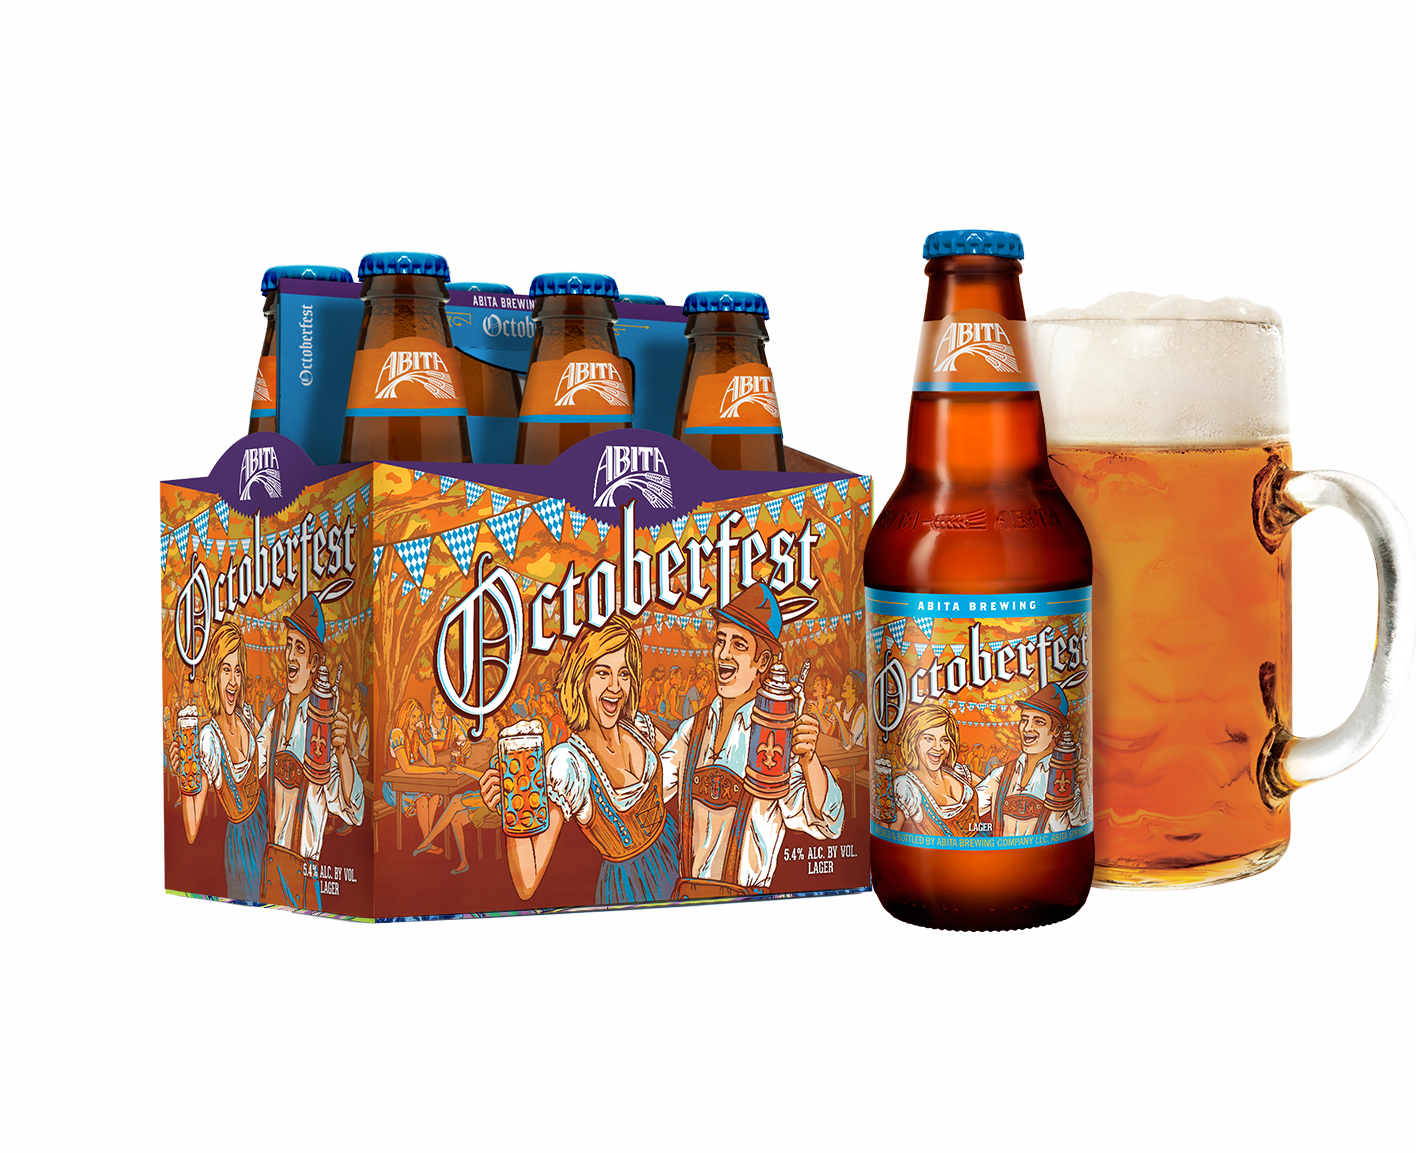 Octoberfest_3Qtr_Render_w_Bottle_Glasswa